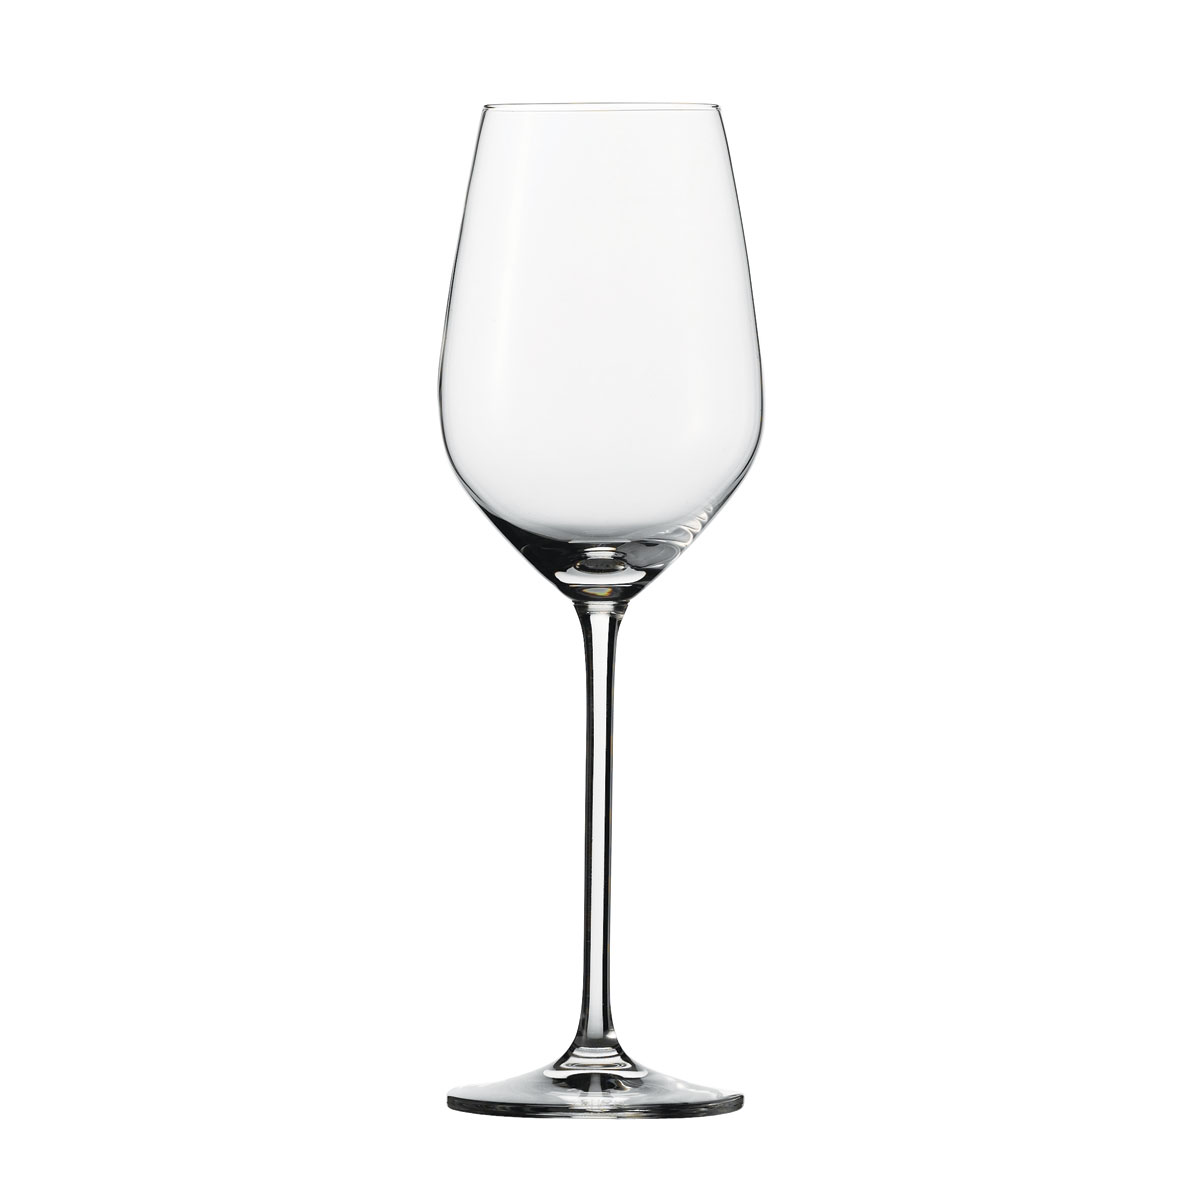 Schott Zwiesel Tritan Crystal, Fortissimo Red Wine Glass, Single